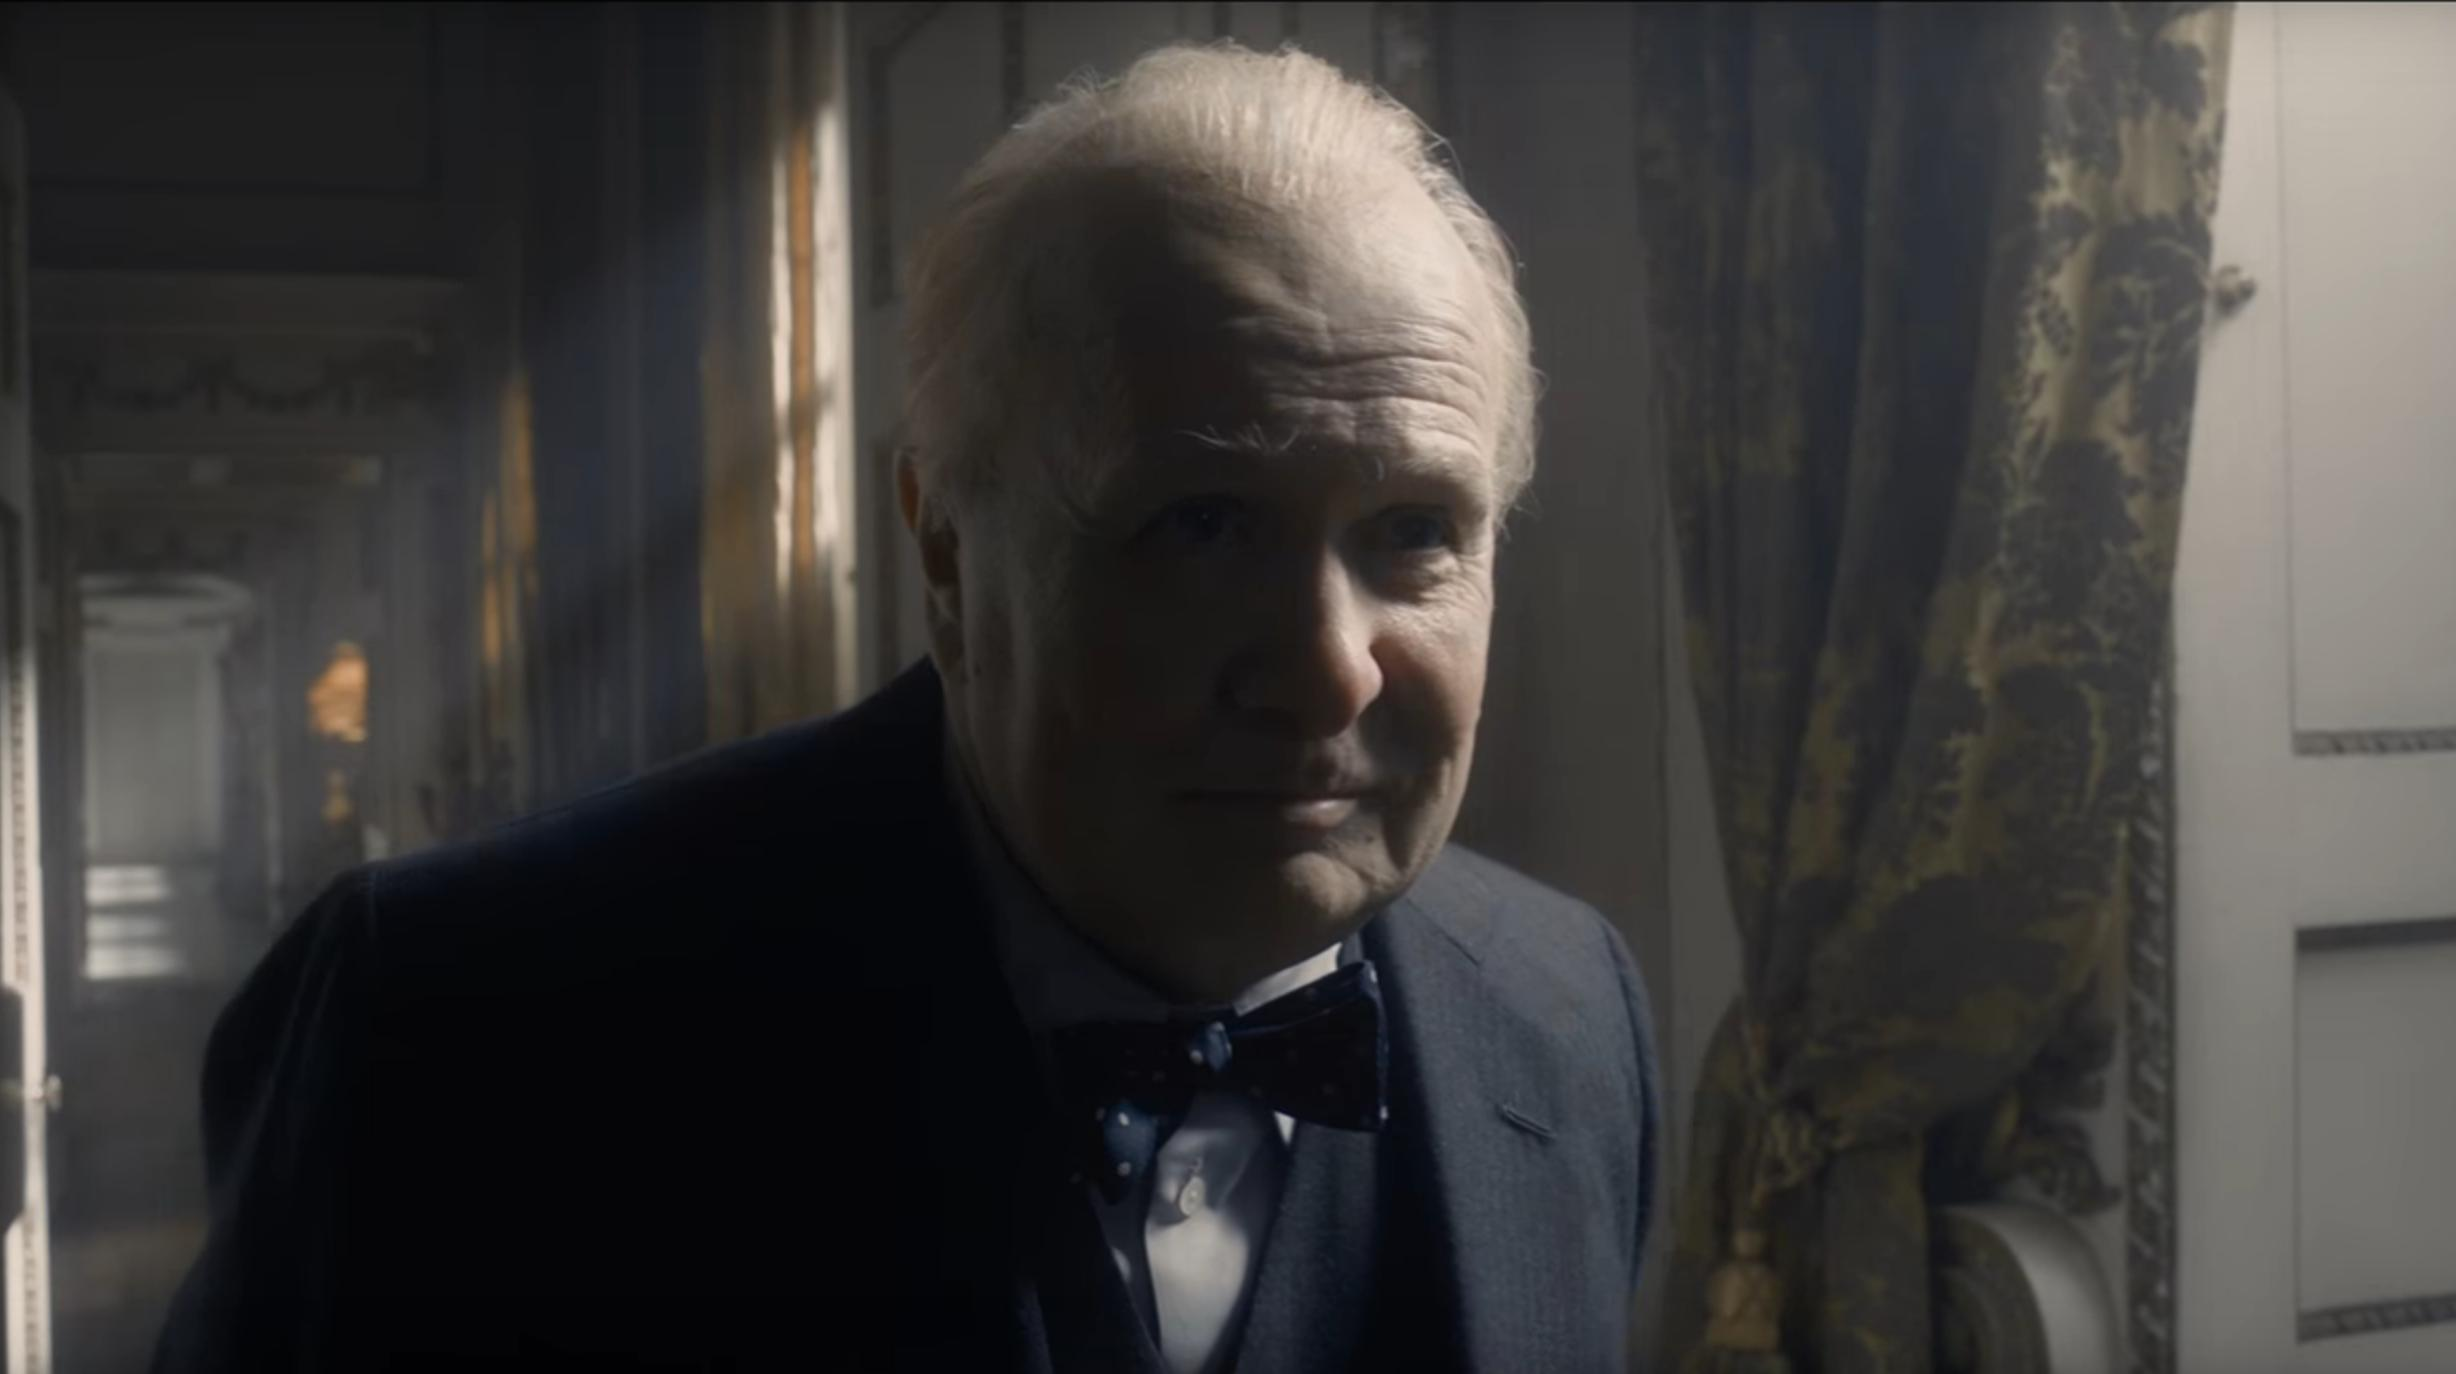 Gary Oldman in Darkest Hour Churchill War film